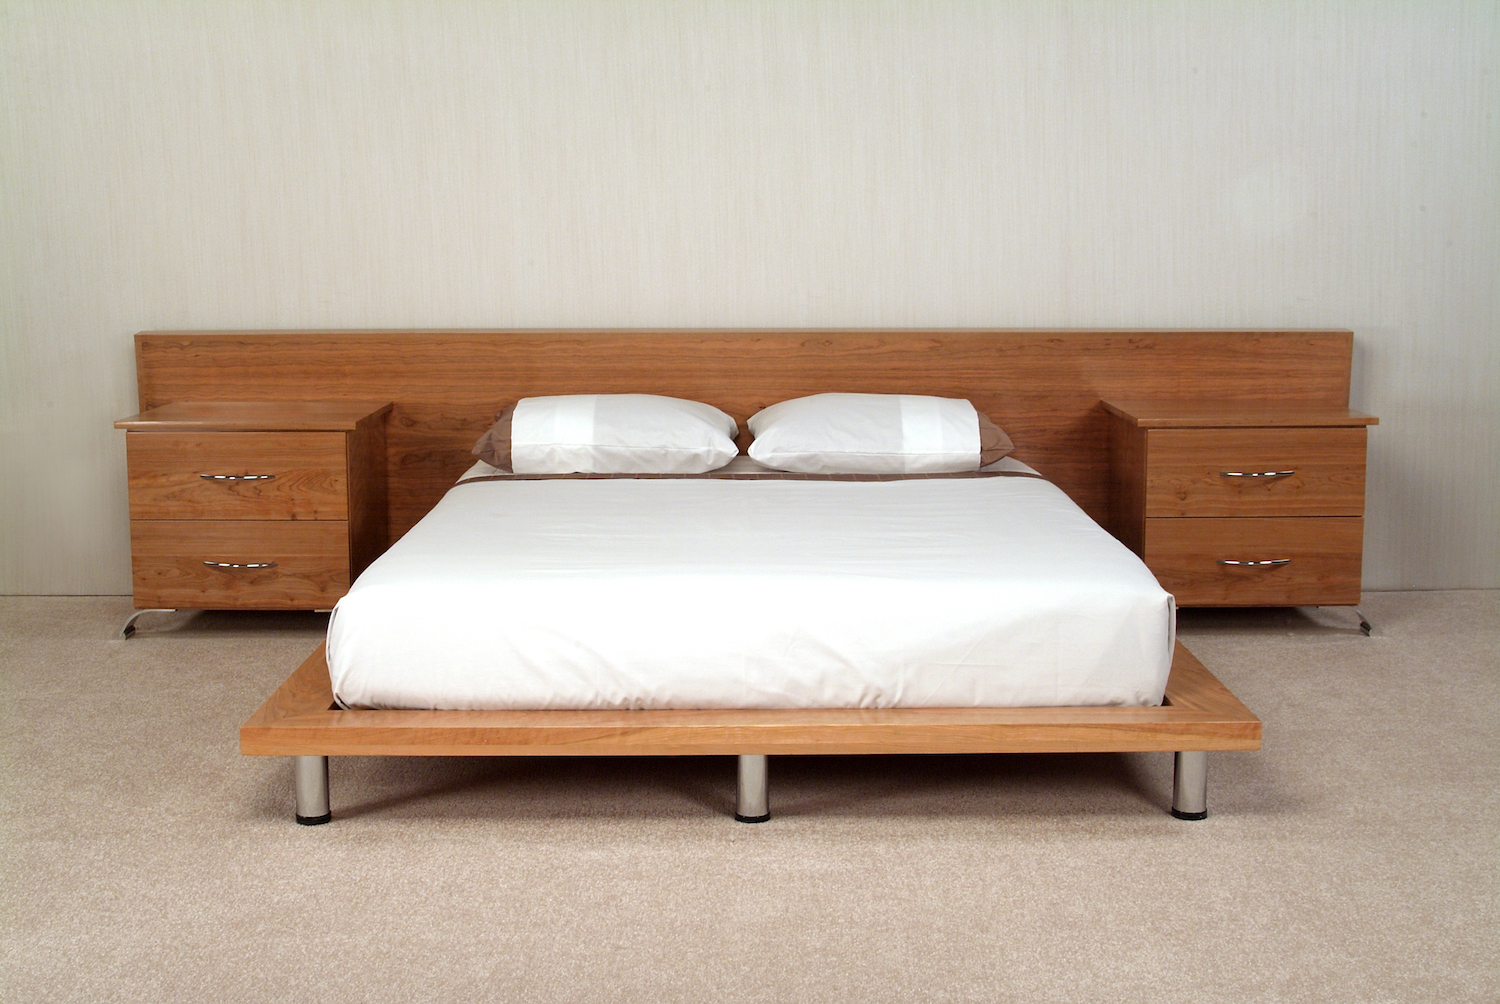 Cherry Platfrom Bed with Chrome Legs. Headboard and Two Nightstands with Granite Inserts.